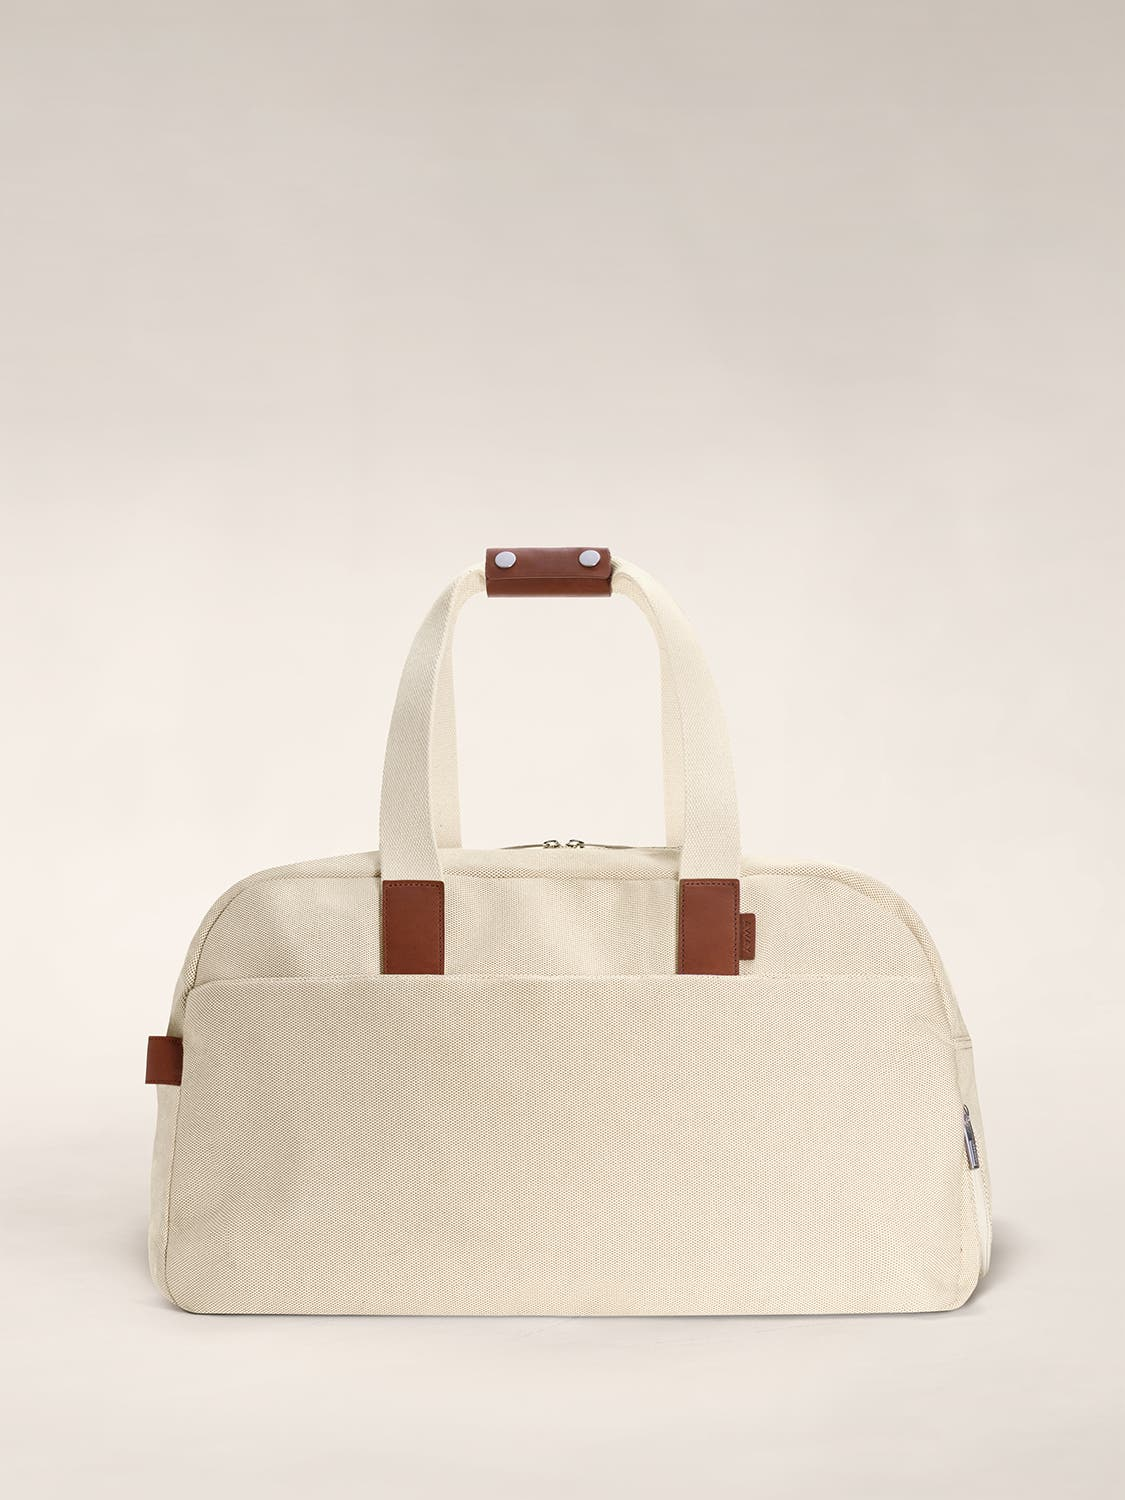 A canvas duffle bag in the color sand with brown leather trim.